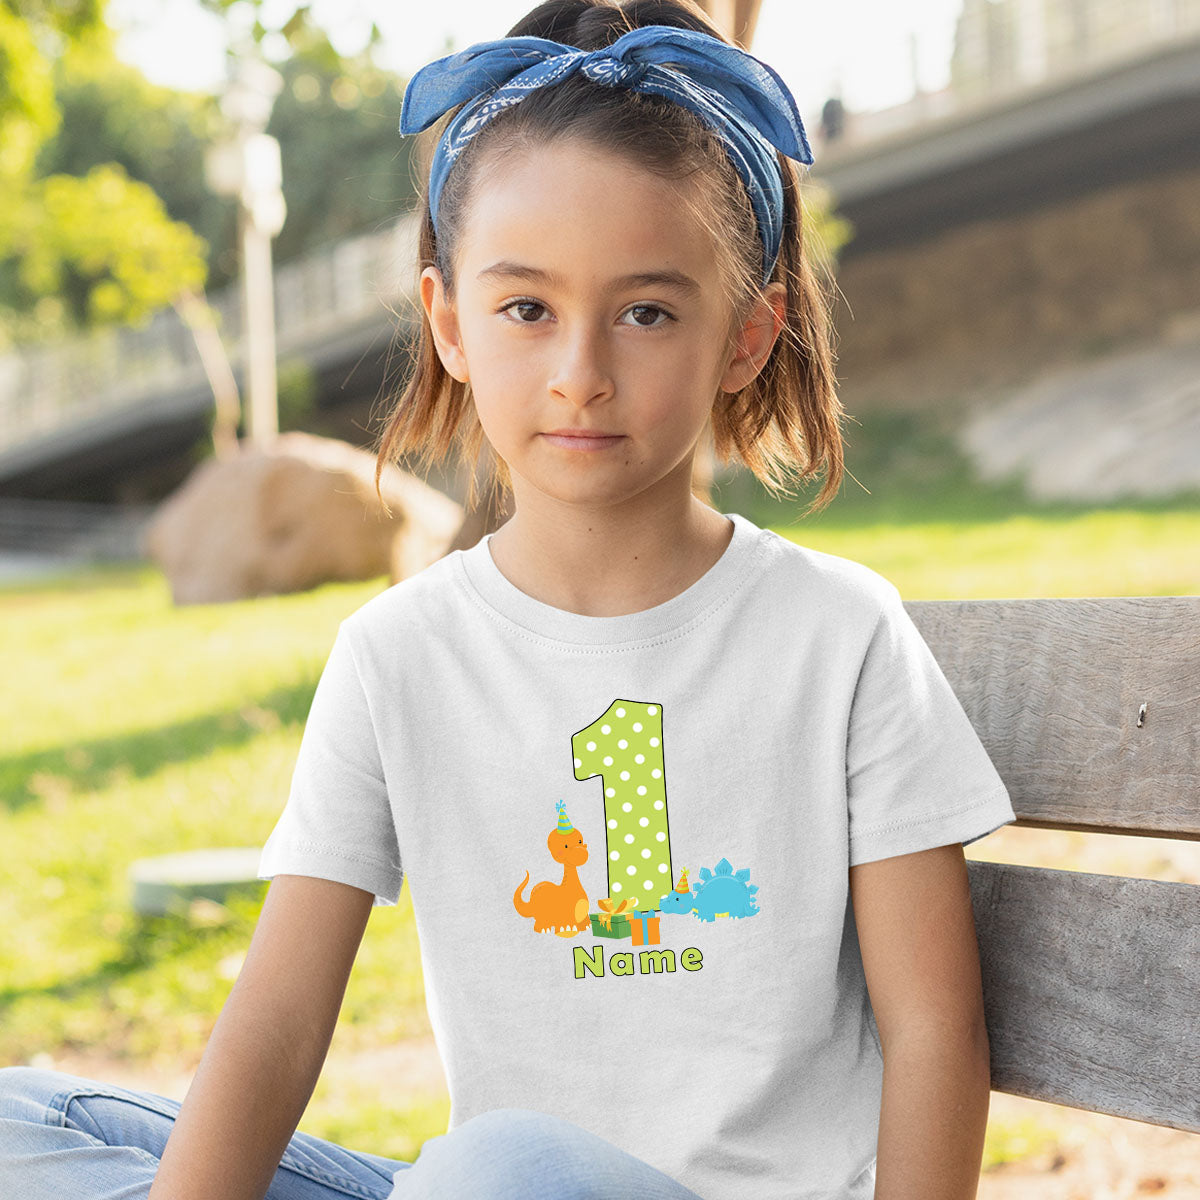 Sprinklecart Cute Personalized Age and Name Printed Birthday Wear | Beautiful First Birthday T Shirt